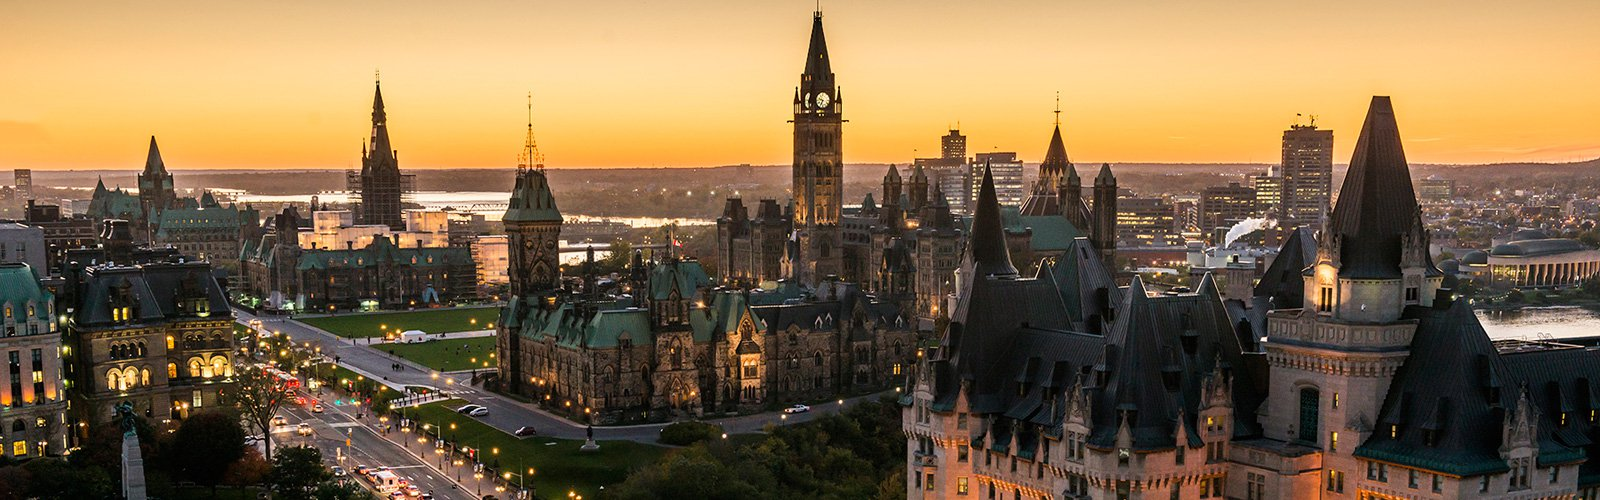 1600x500 panoramic view of downtown ottawa with parliament hill